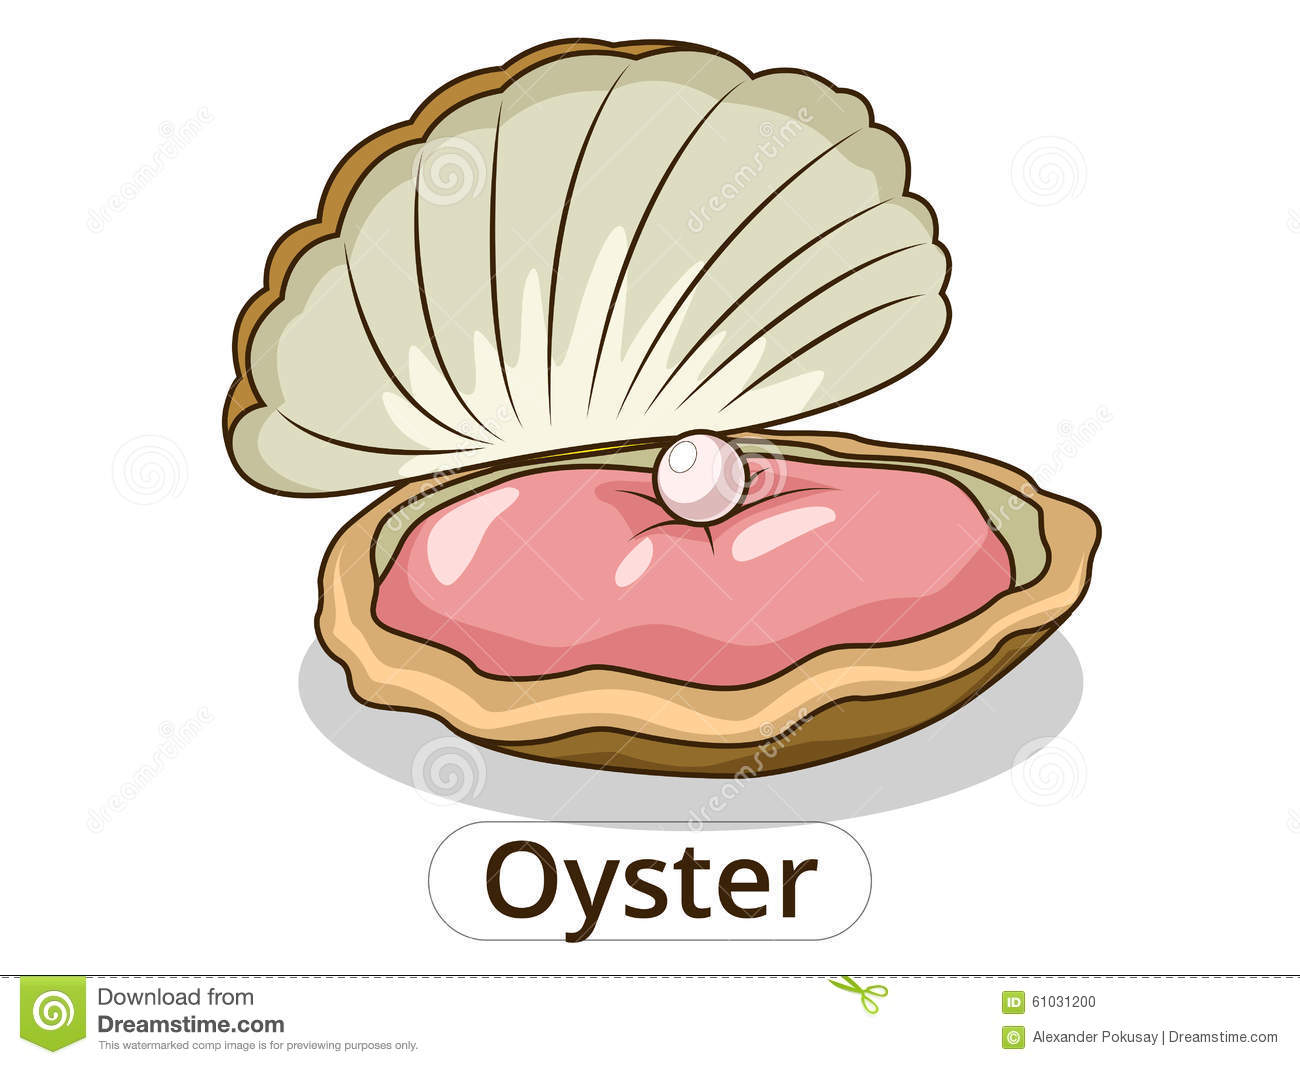 Oyster Underwater Animal Cartoon Illustration Stock Vector - Image ... Open Oyster Shell With Pearl